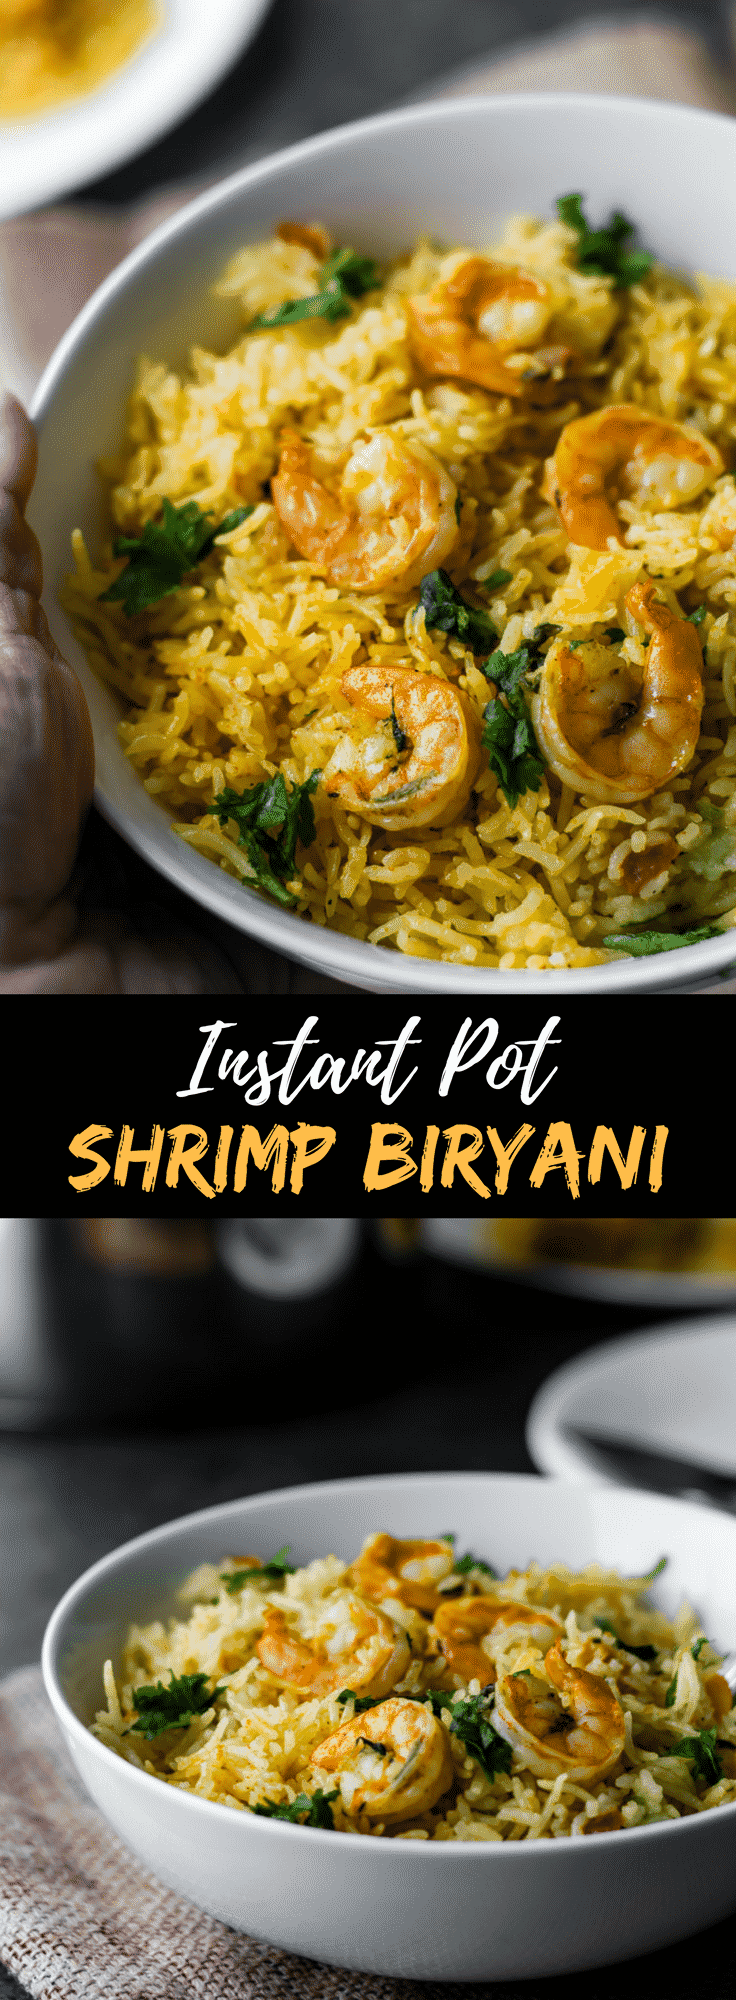 Looking for a failproof and easy shrimp or prawn biryani recipe? I have one for you! This ethnic seafood recipe will yield the most flavorful biryani without a lot of hard work. Make this prawns biryani either in the Instant Pot or stovetop - it will give you spectacular results either ways. Indian seafood at it best!